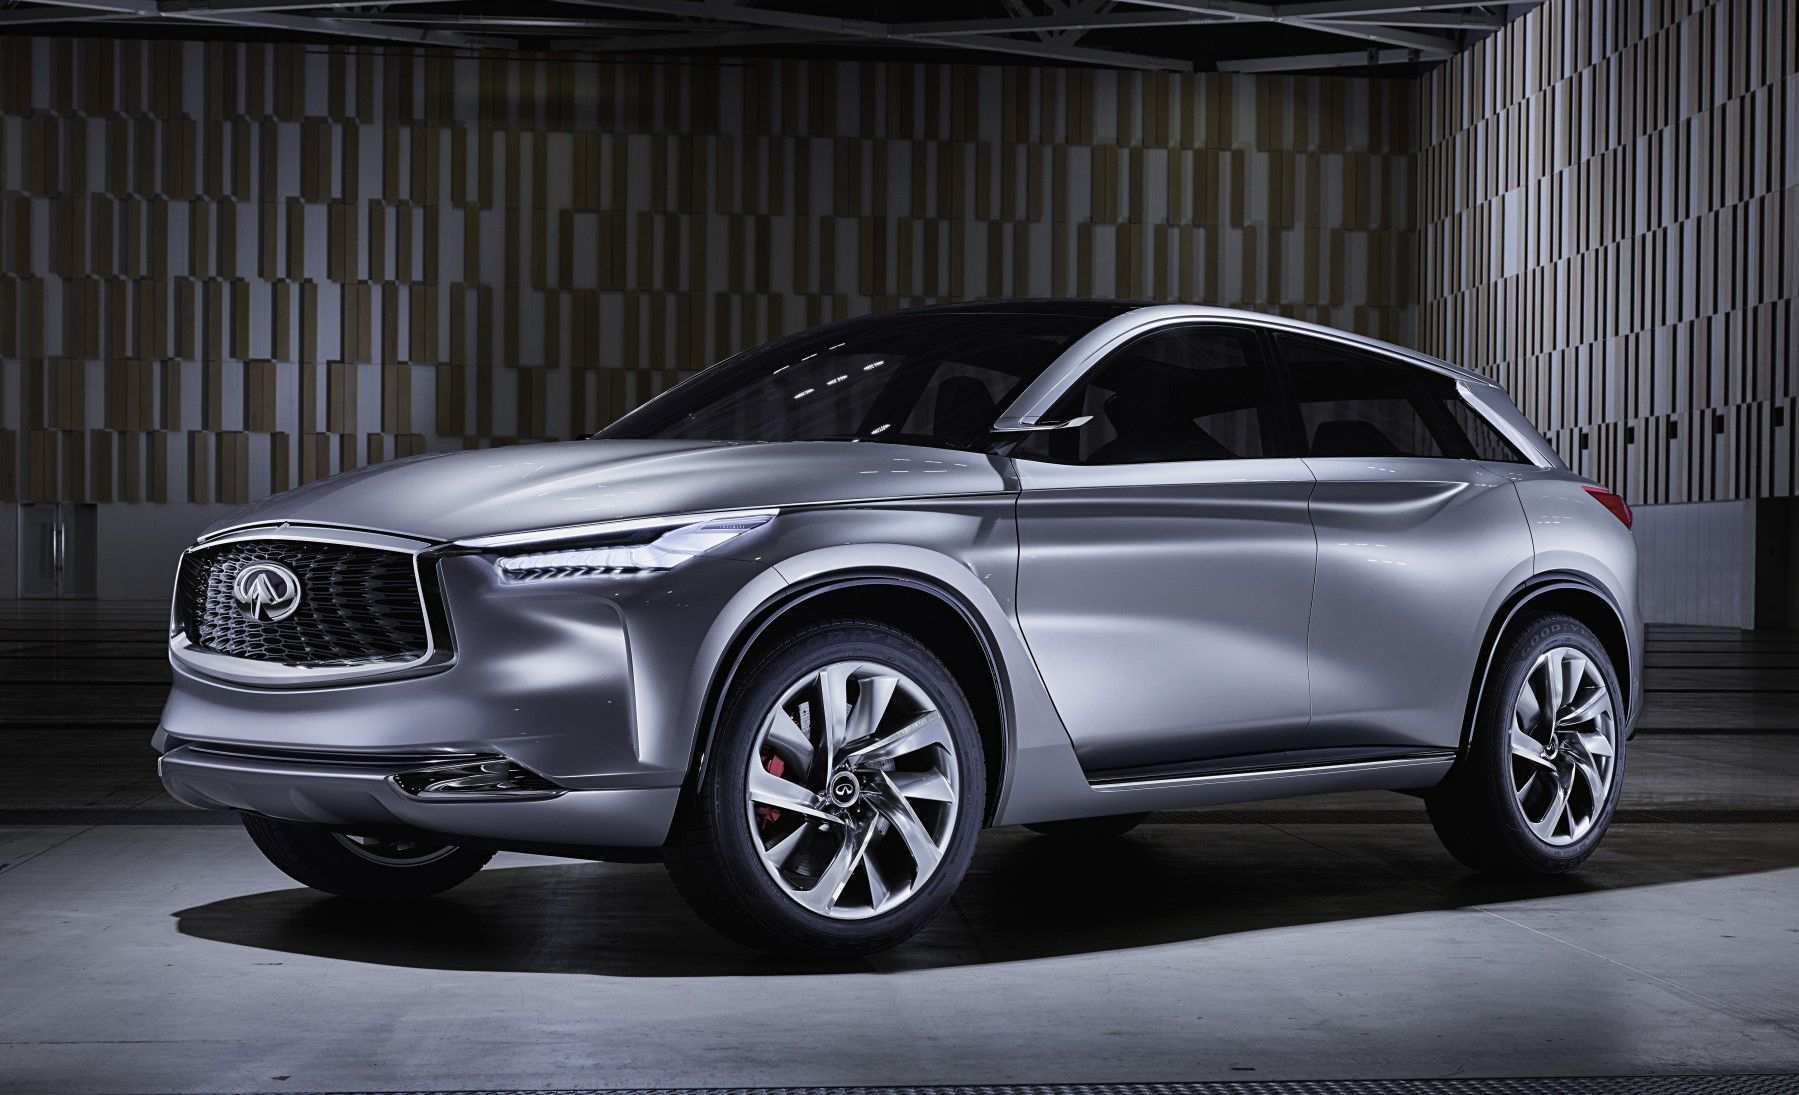 85 Best Review 2020 Infiniti New Concept Price by 2020 Infiniti New Concept